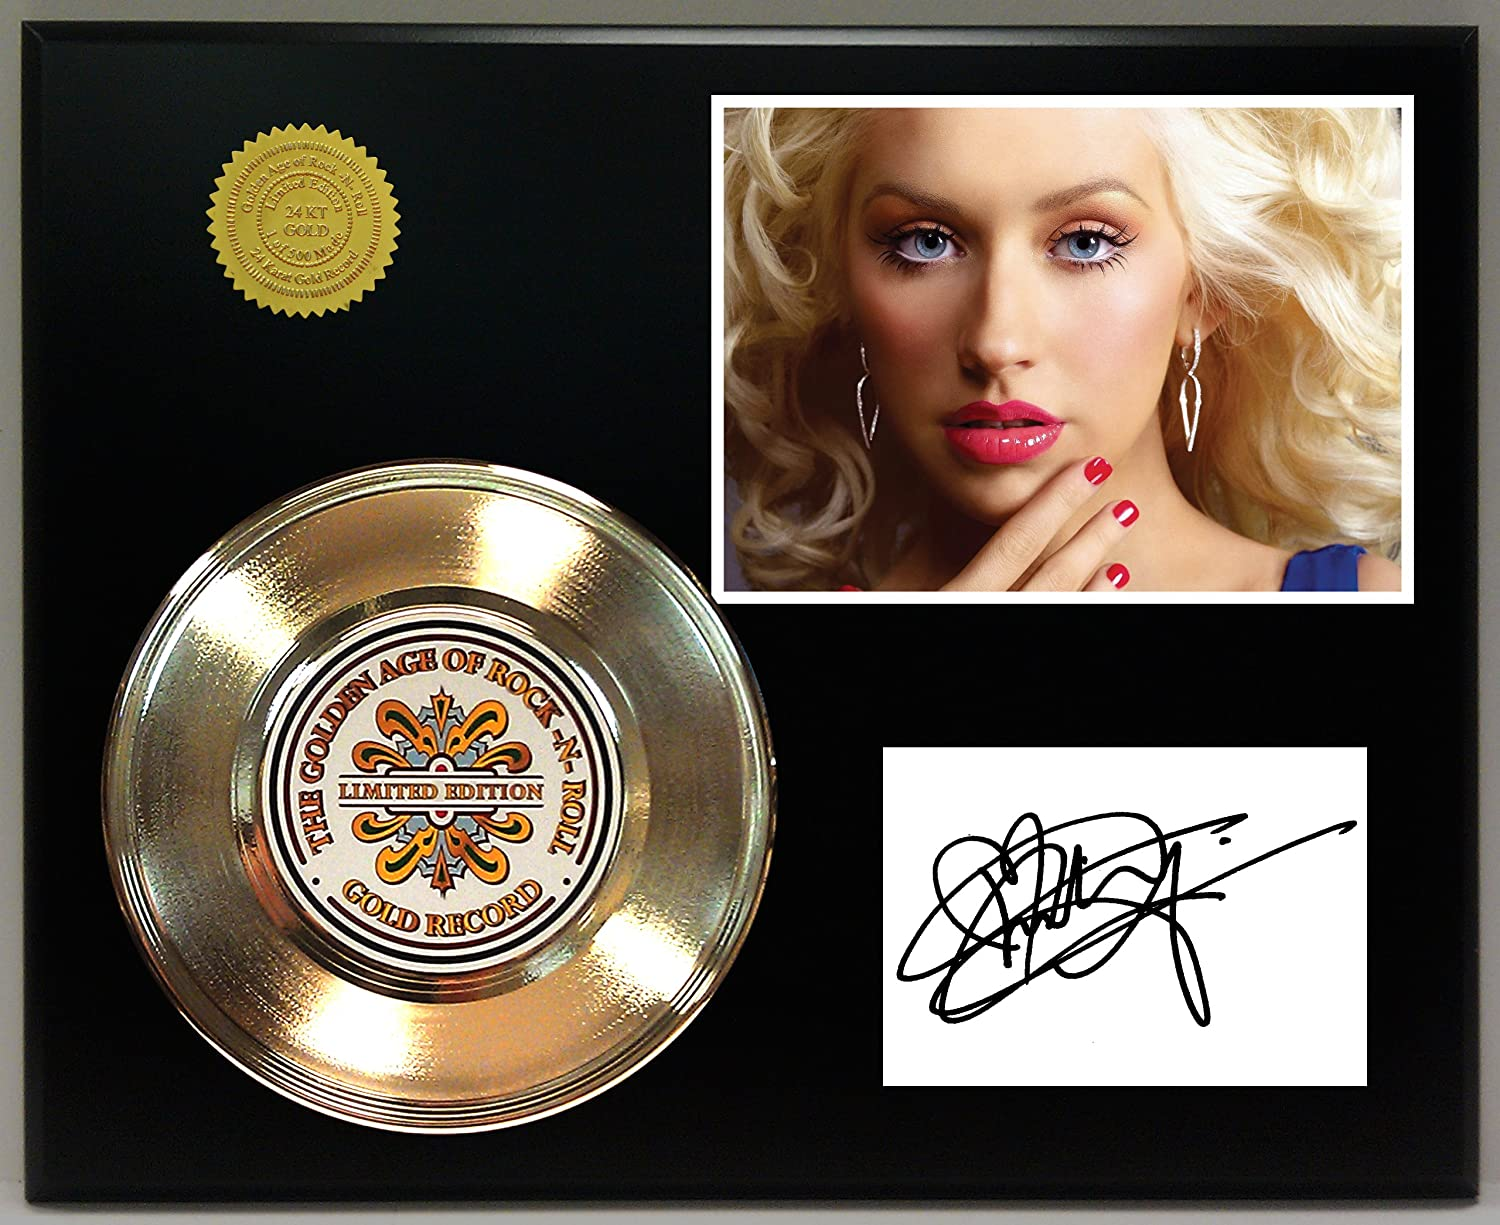 Christine Aguilera Gold Record Signature Series LTD Edition Display Gold Record Outlet